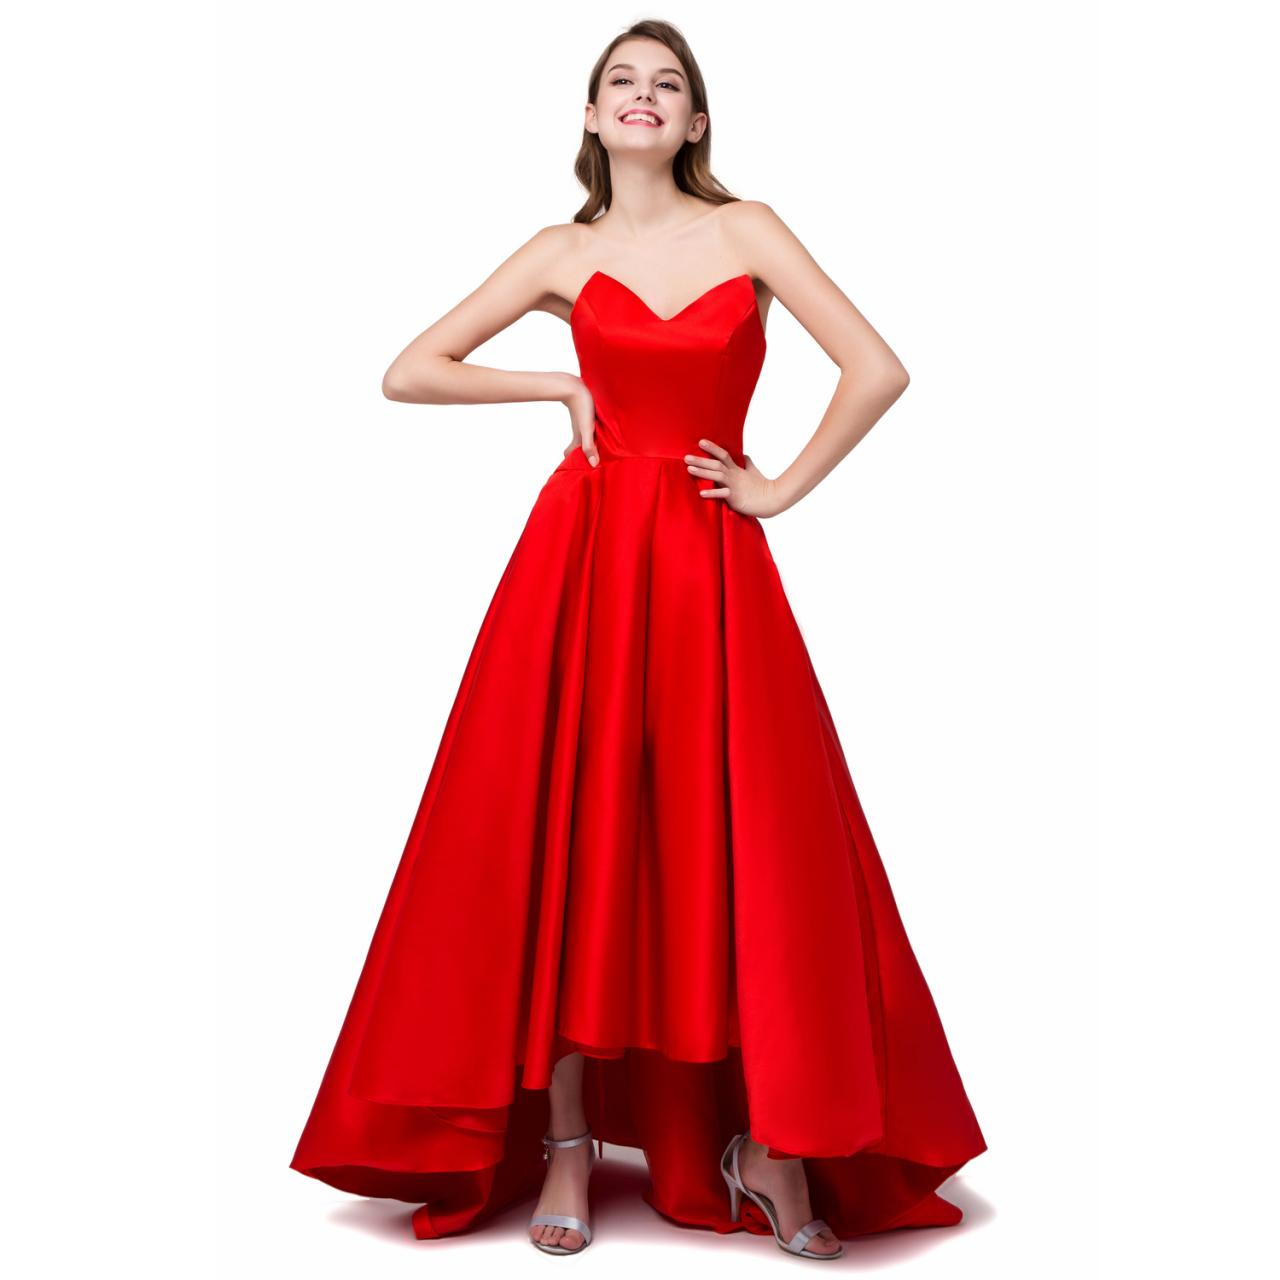 Red Satin High Low Formal Dresses Featuring V Neckline And Ruched Skirt - Evening Gowns,High Low Prom Dress